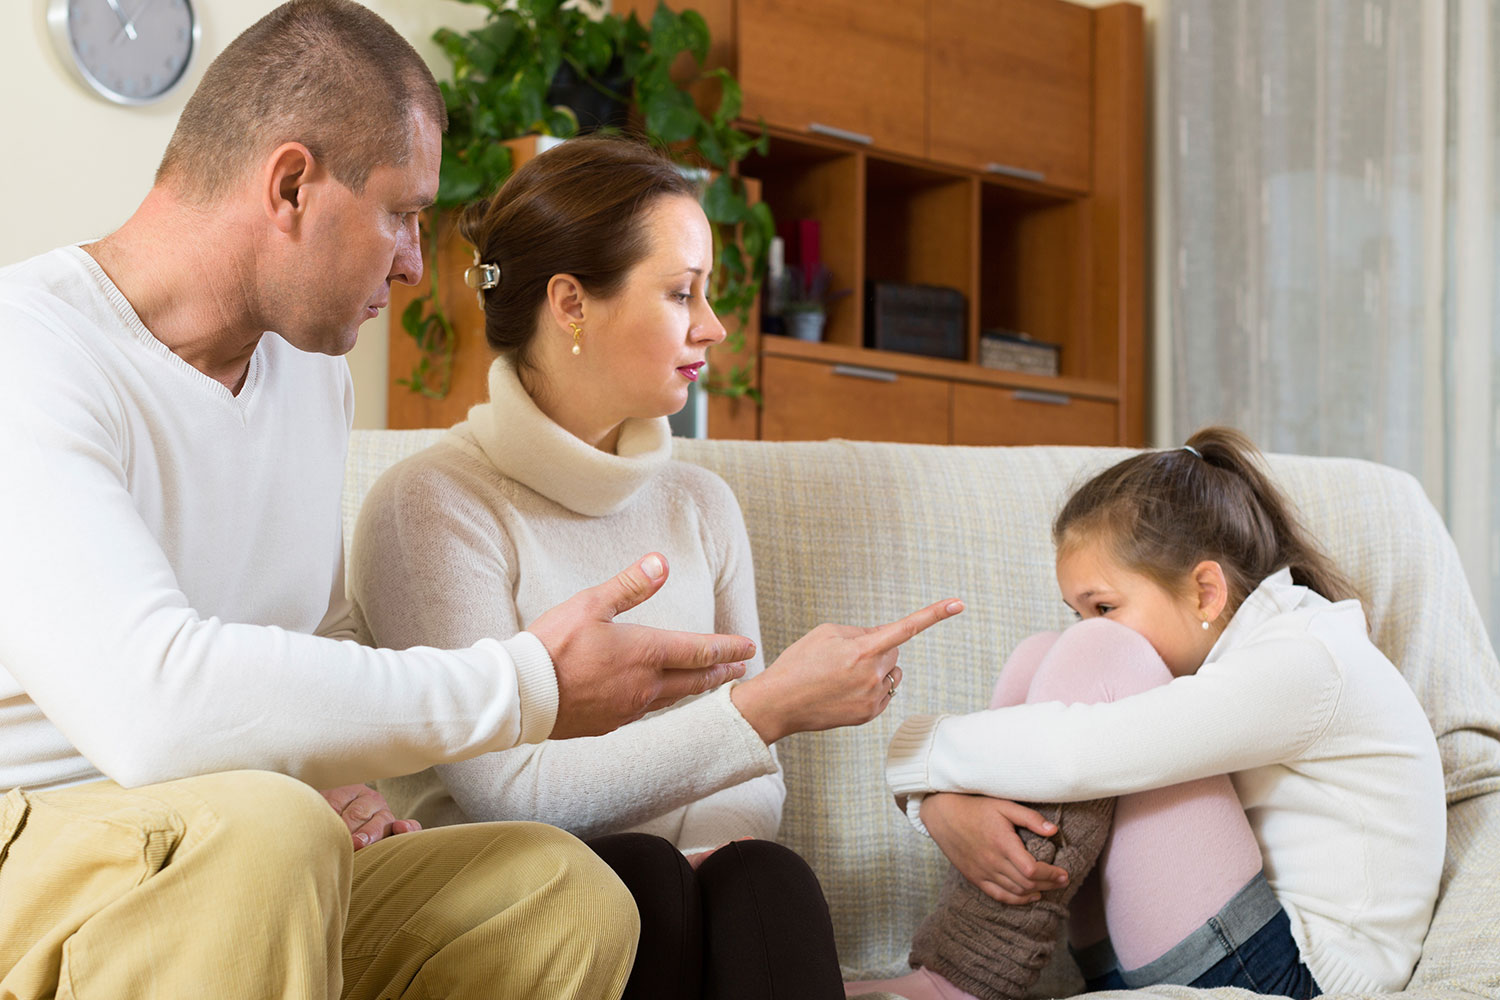 "discipline versus child abuse Discipline vs child abuse a synopsis of the issue, contrasting the benefits of discipline with the detriments of child abuse ""correct thy son, and he shall give thee rest yea, he shall give delight unto."